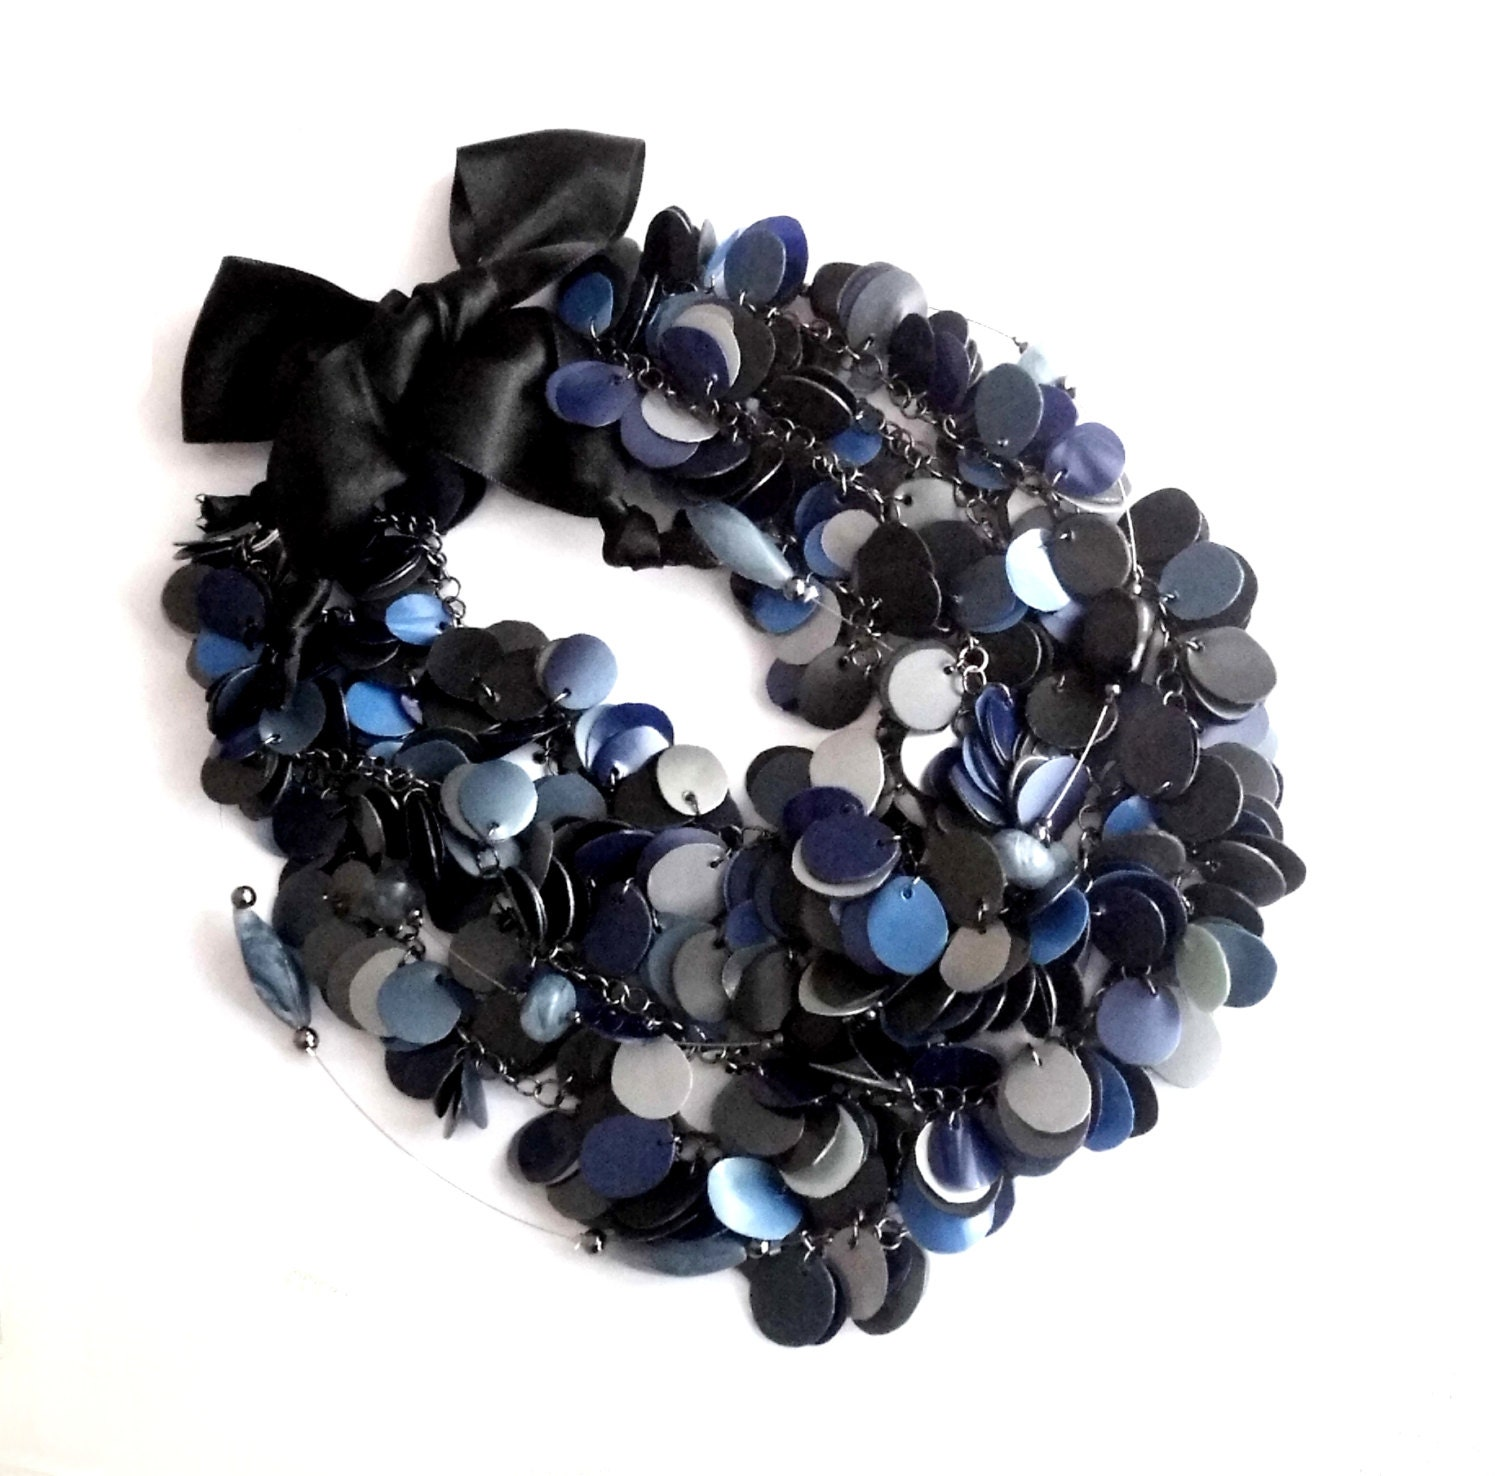 Statement necklace made of recycled plastic bottles dark blue for Jewelry made from plastic bottles